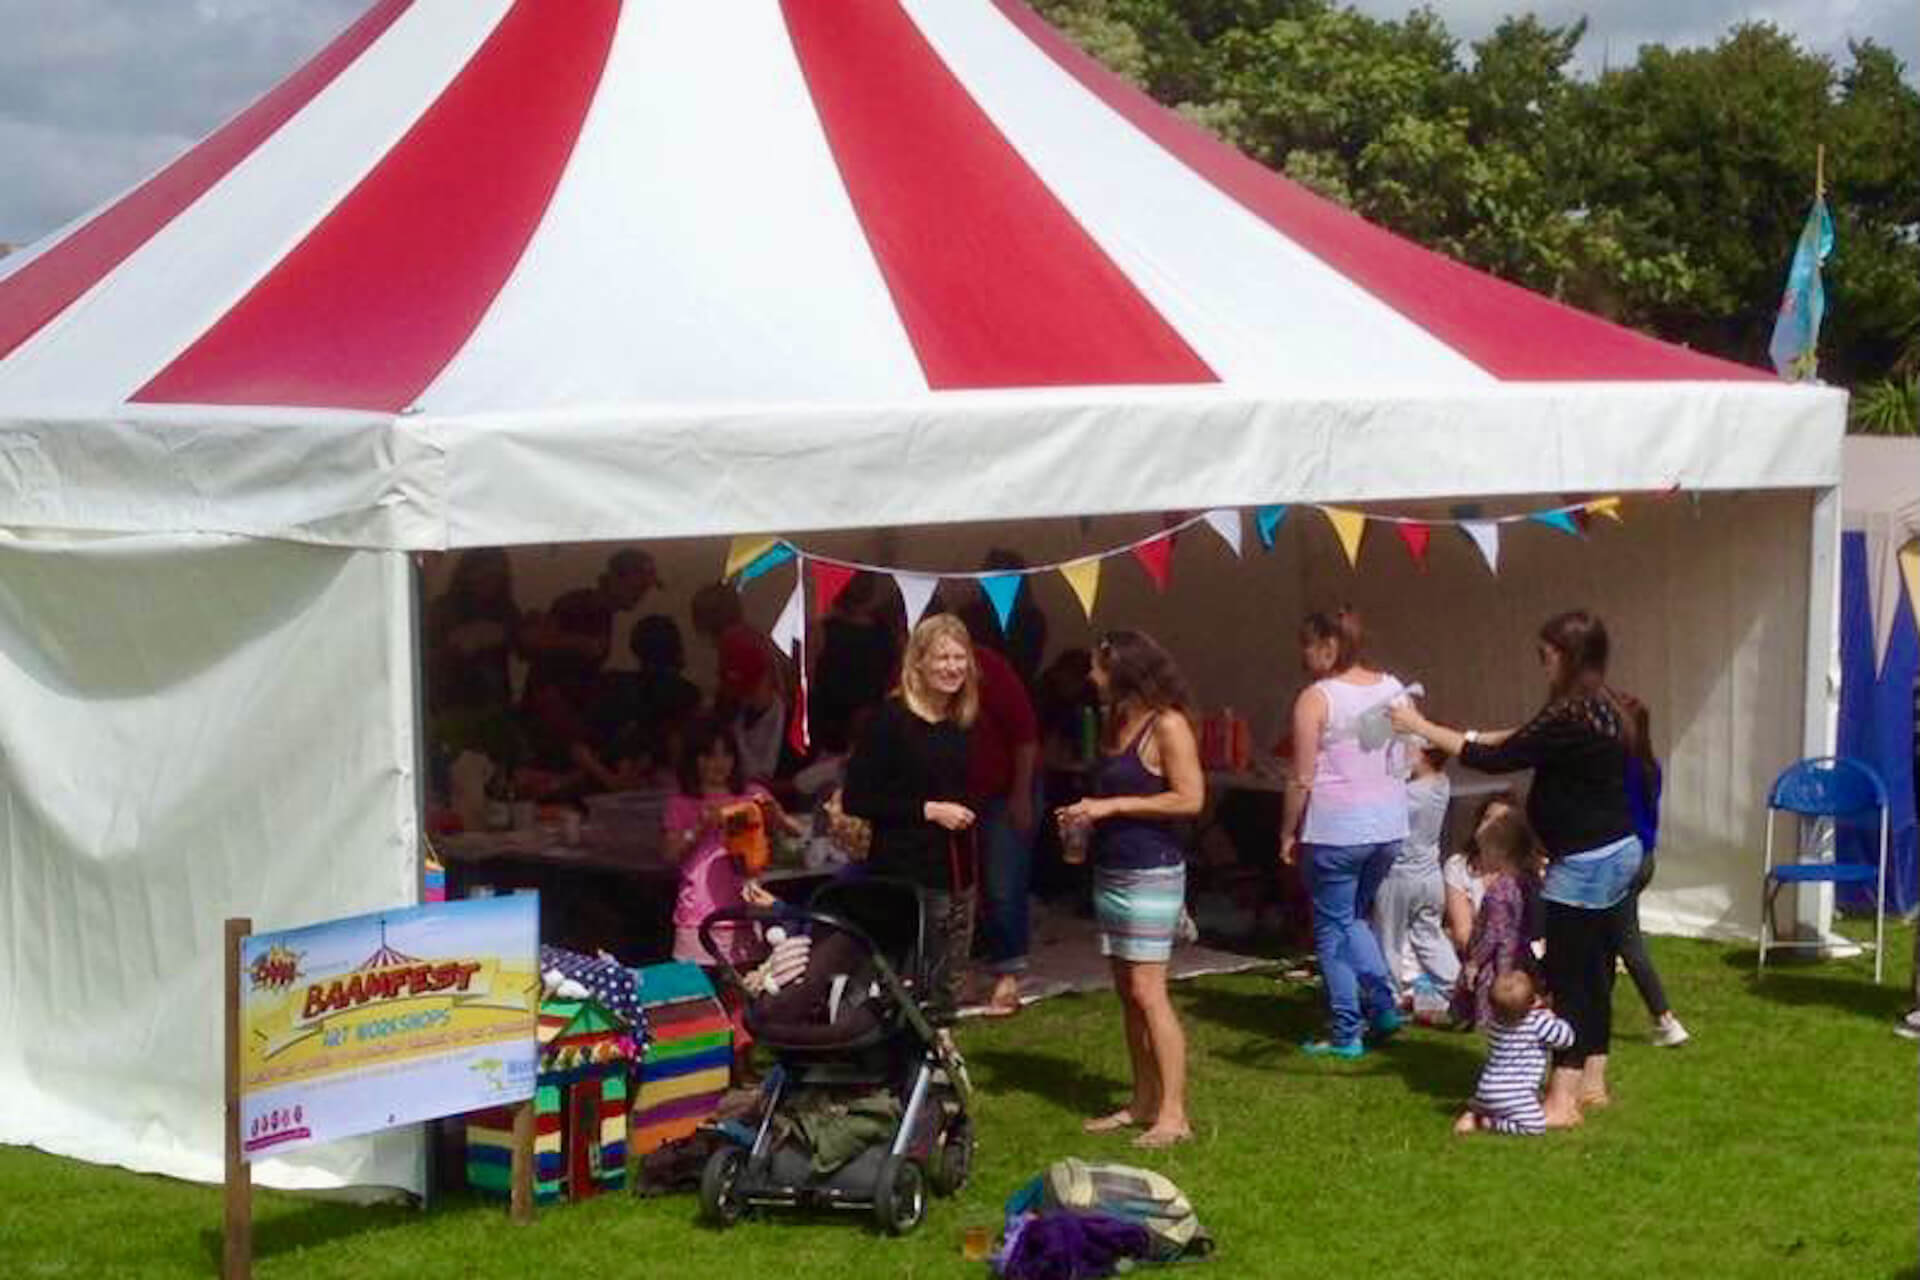 Children's tent at BAAM festival Bude north Cornwall